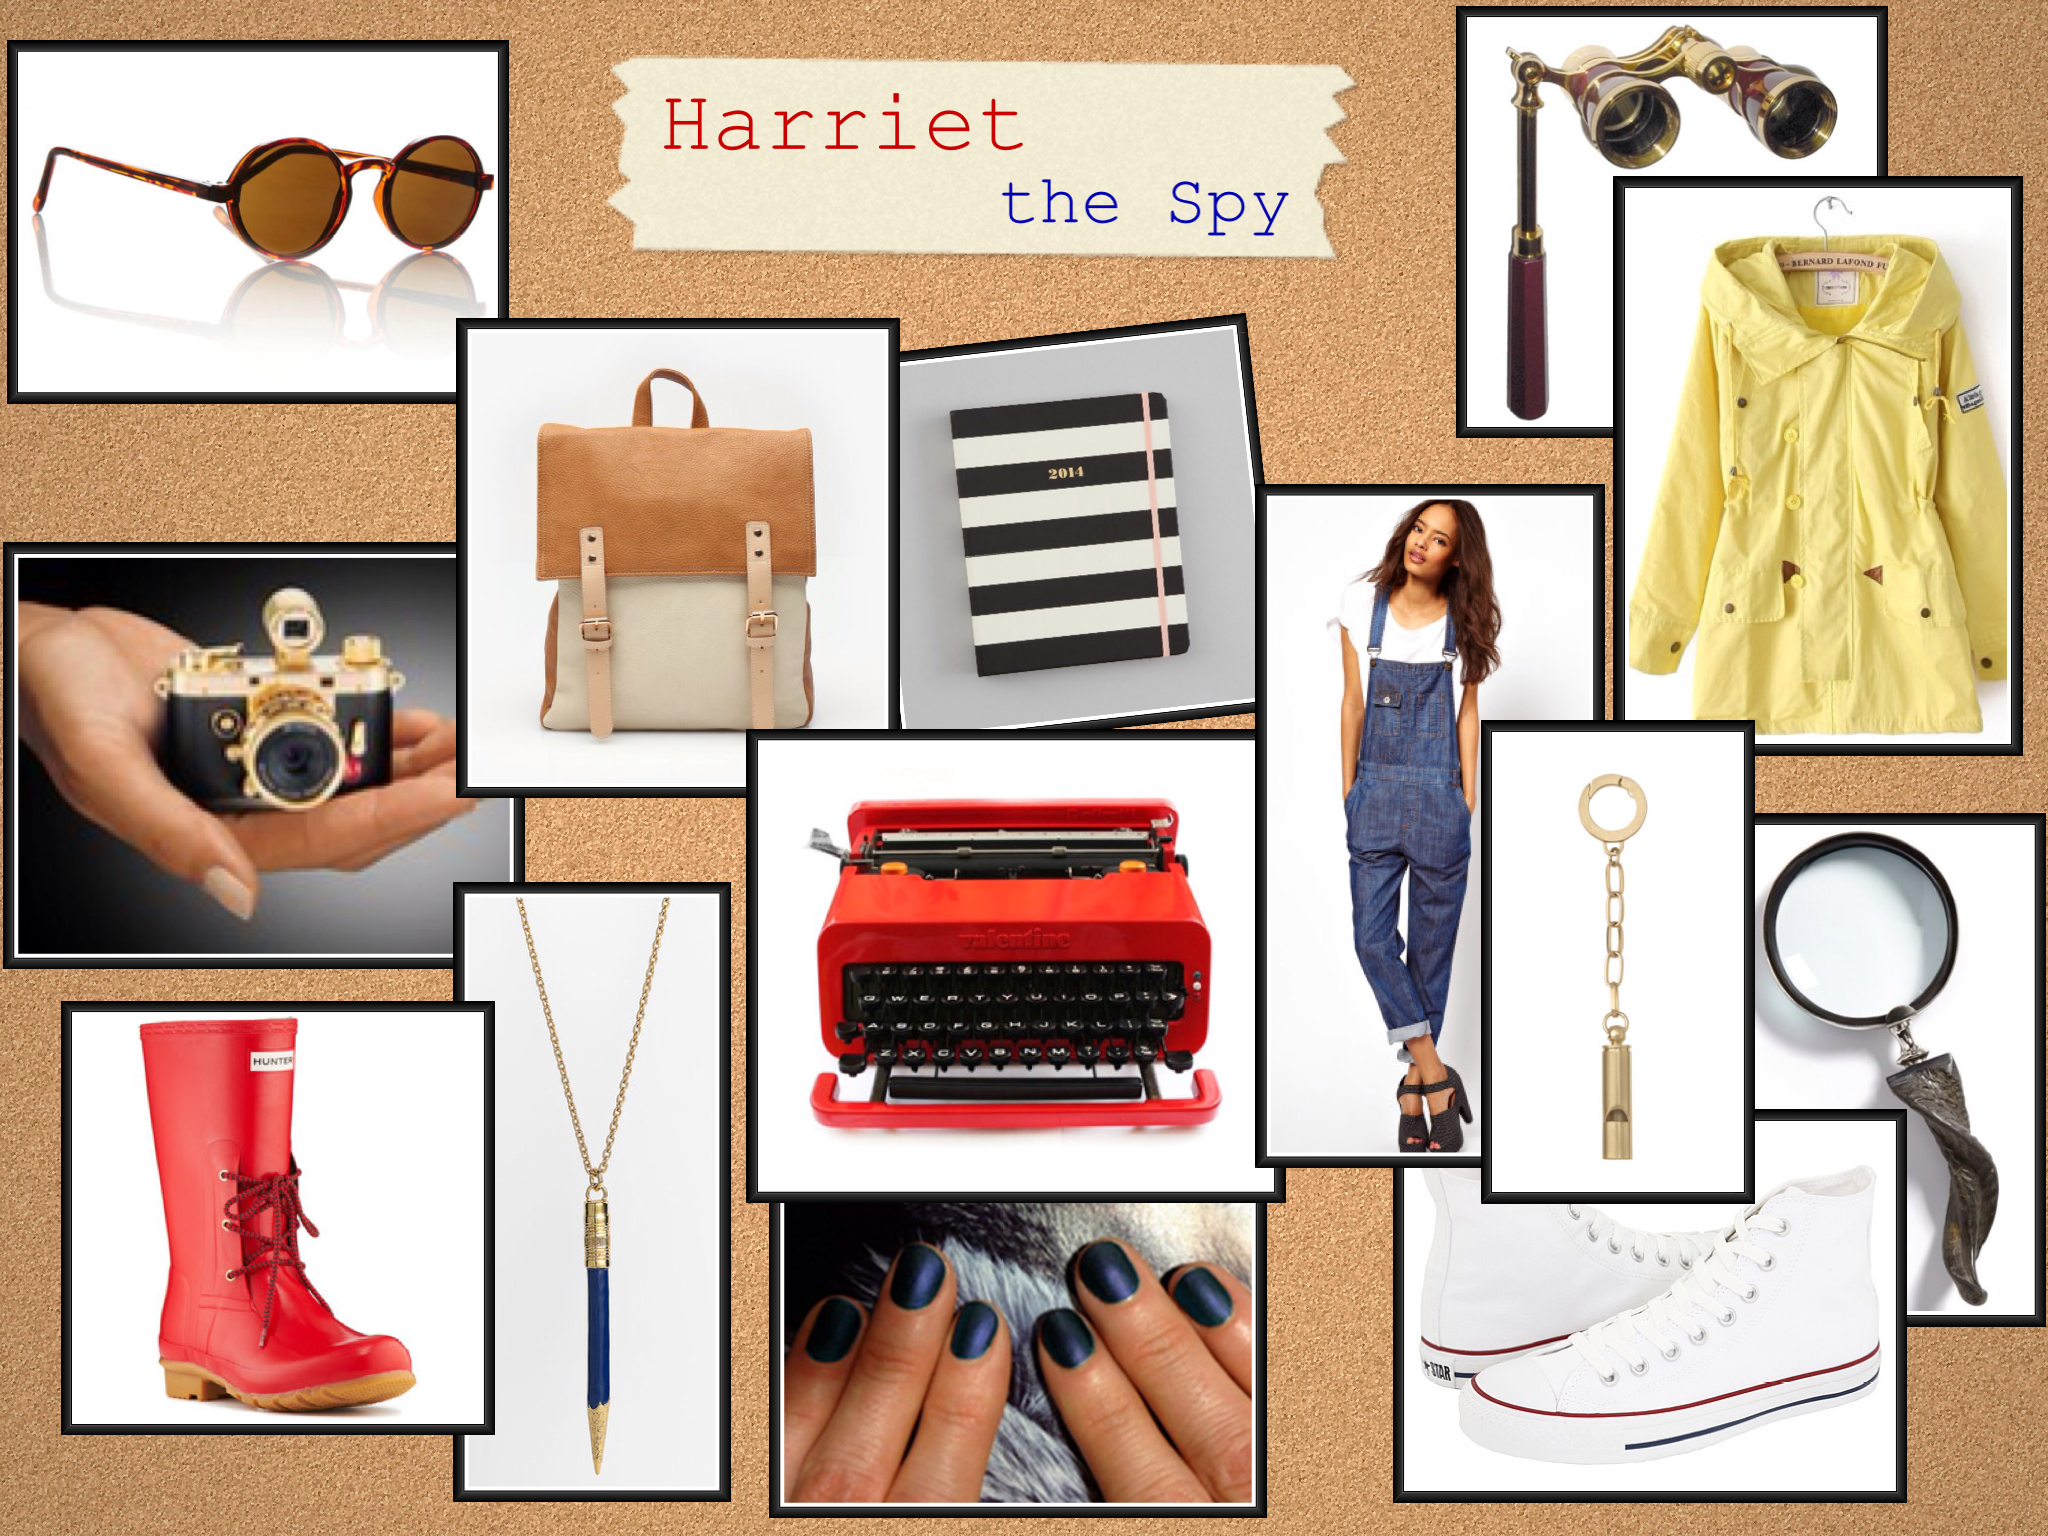 Clockwise from left to right:   Great Gatsby Sunglasses |  Rockland Backpack |  Kate Spade 2014 Monthly Agenda | Opera Glasses Binoculars with Handle |  Yellow Raincoat |  Twisted Horn Handle Magnifying Glass | White Converse High Tops |  Kate Spade Whistle Keychain | ASOS Denim Overalls Pants |  Olivetti Valentine Red Typewriter |  Matte Blue Nail Polish |  Kate Spade Blue Pencil Necklace  |  Red Hunter Rainboots Ackley |  Mini Gold Camera Minox